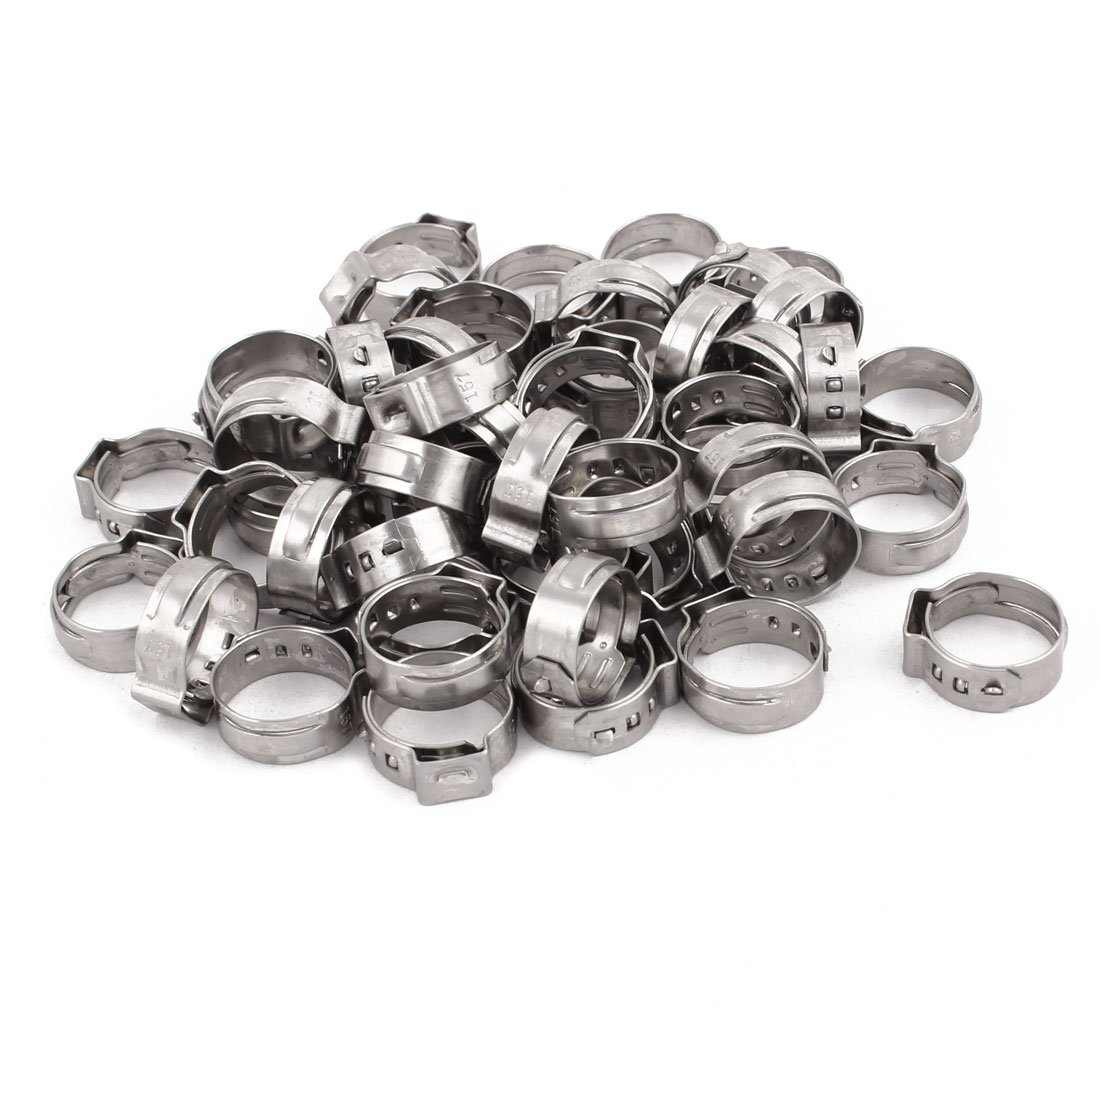 uxcell 13.2mm-15.7mm 304 Stainless Steel Adjustable Tube Hose Clamps Silver Tone 50pcs